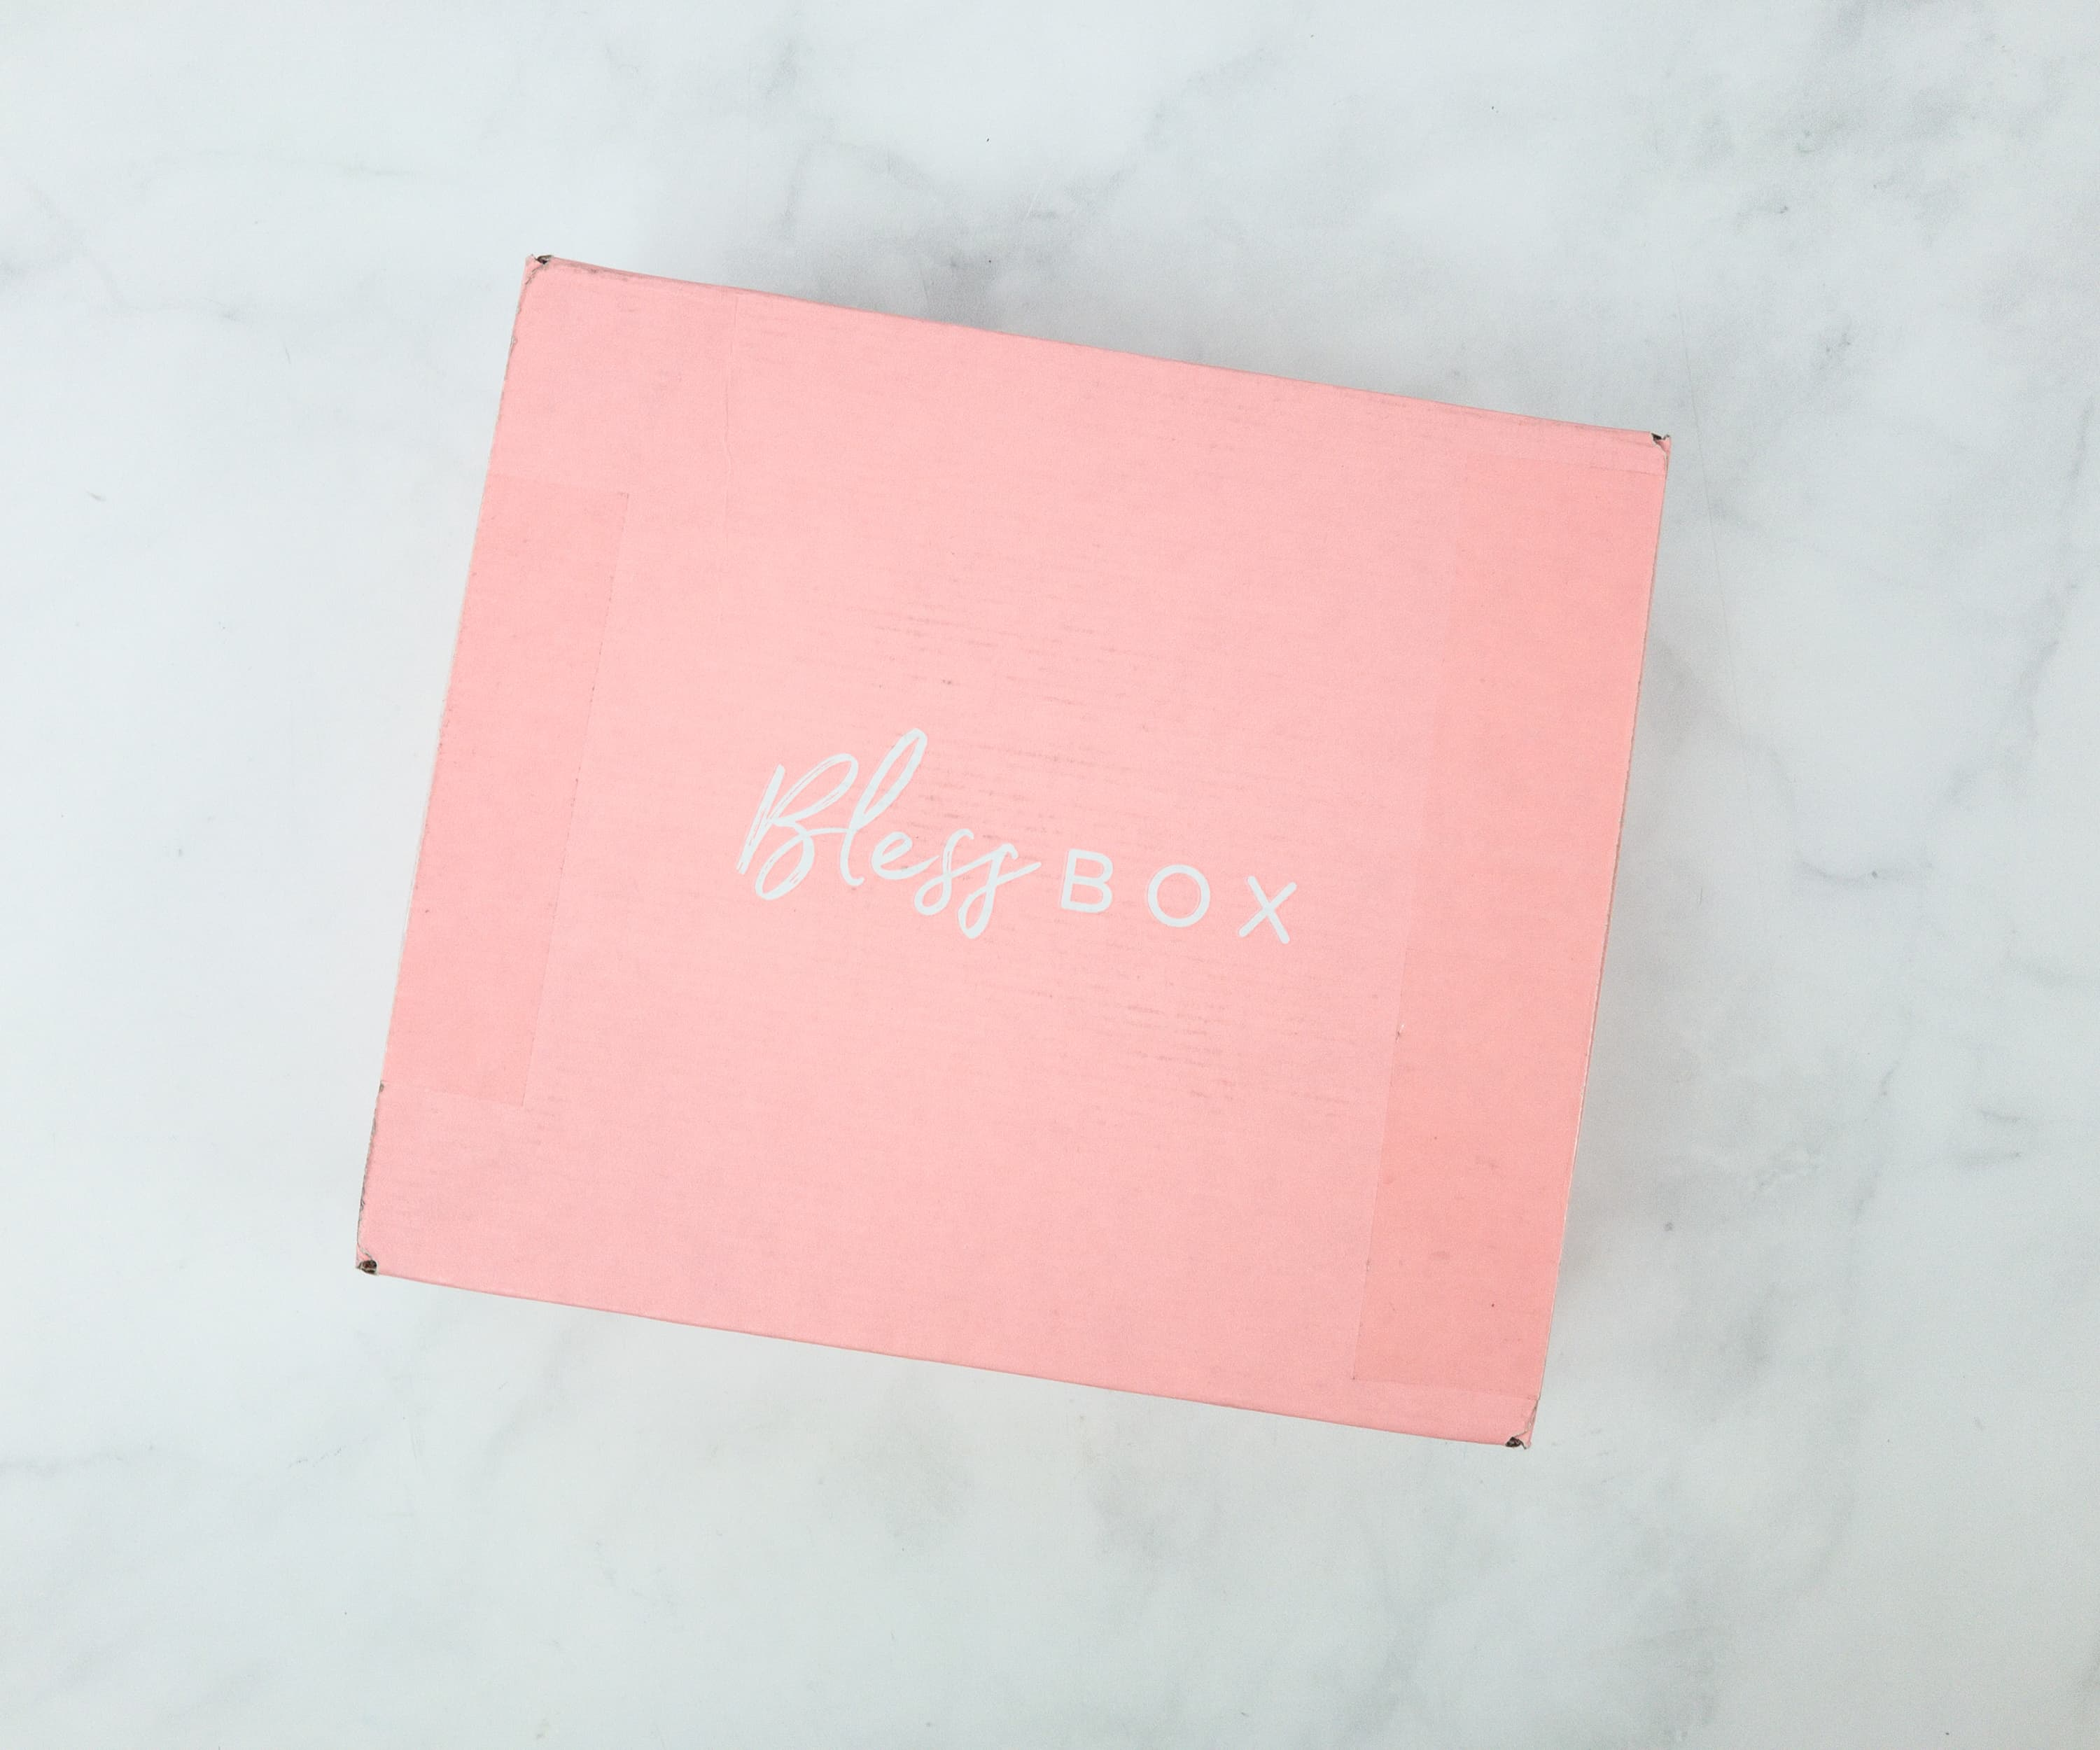 16a48f25197 Bless Box is a monthly women s subscription box by Sazan Hendrix. The box  is curated around the categories of beauty